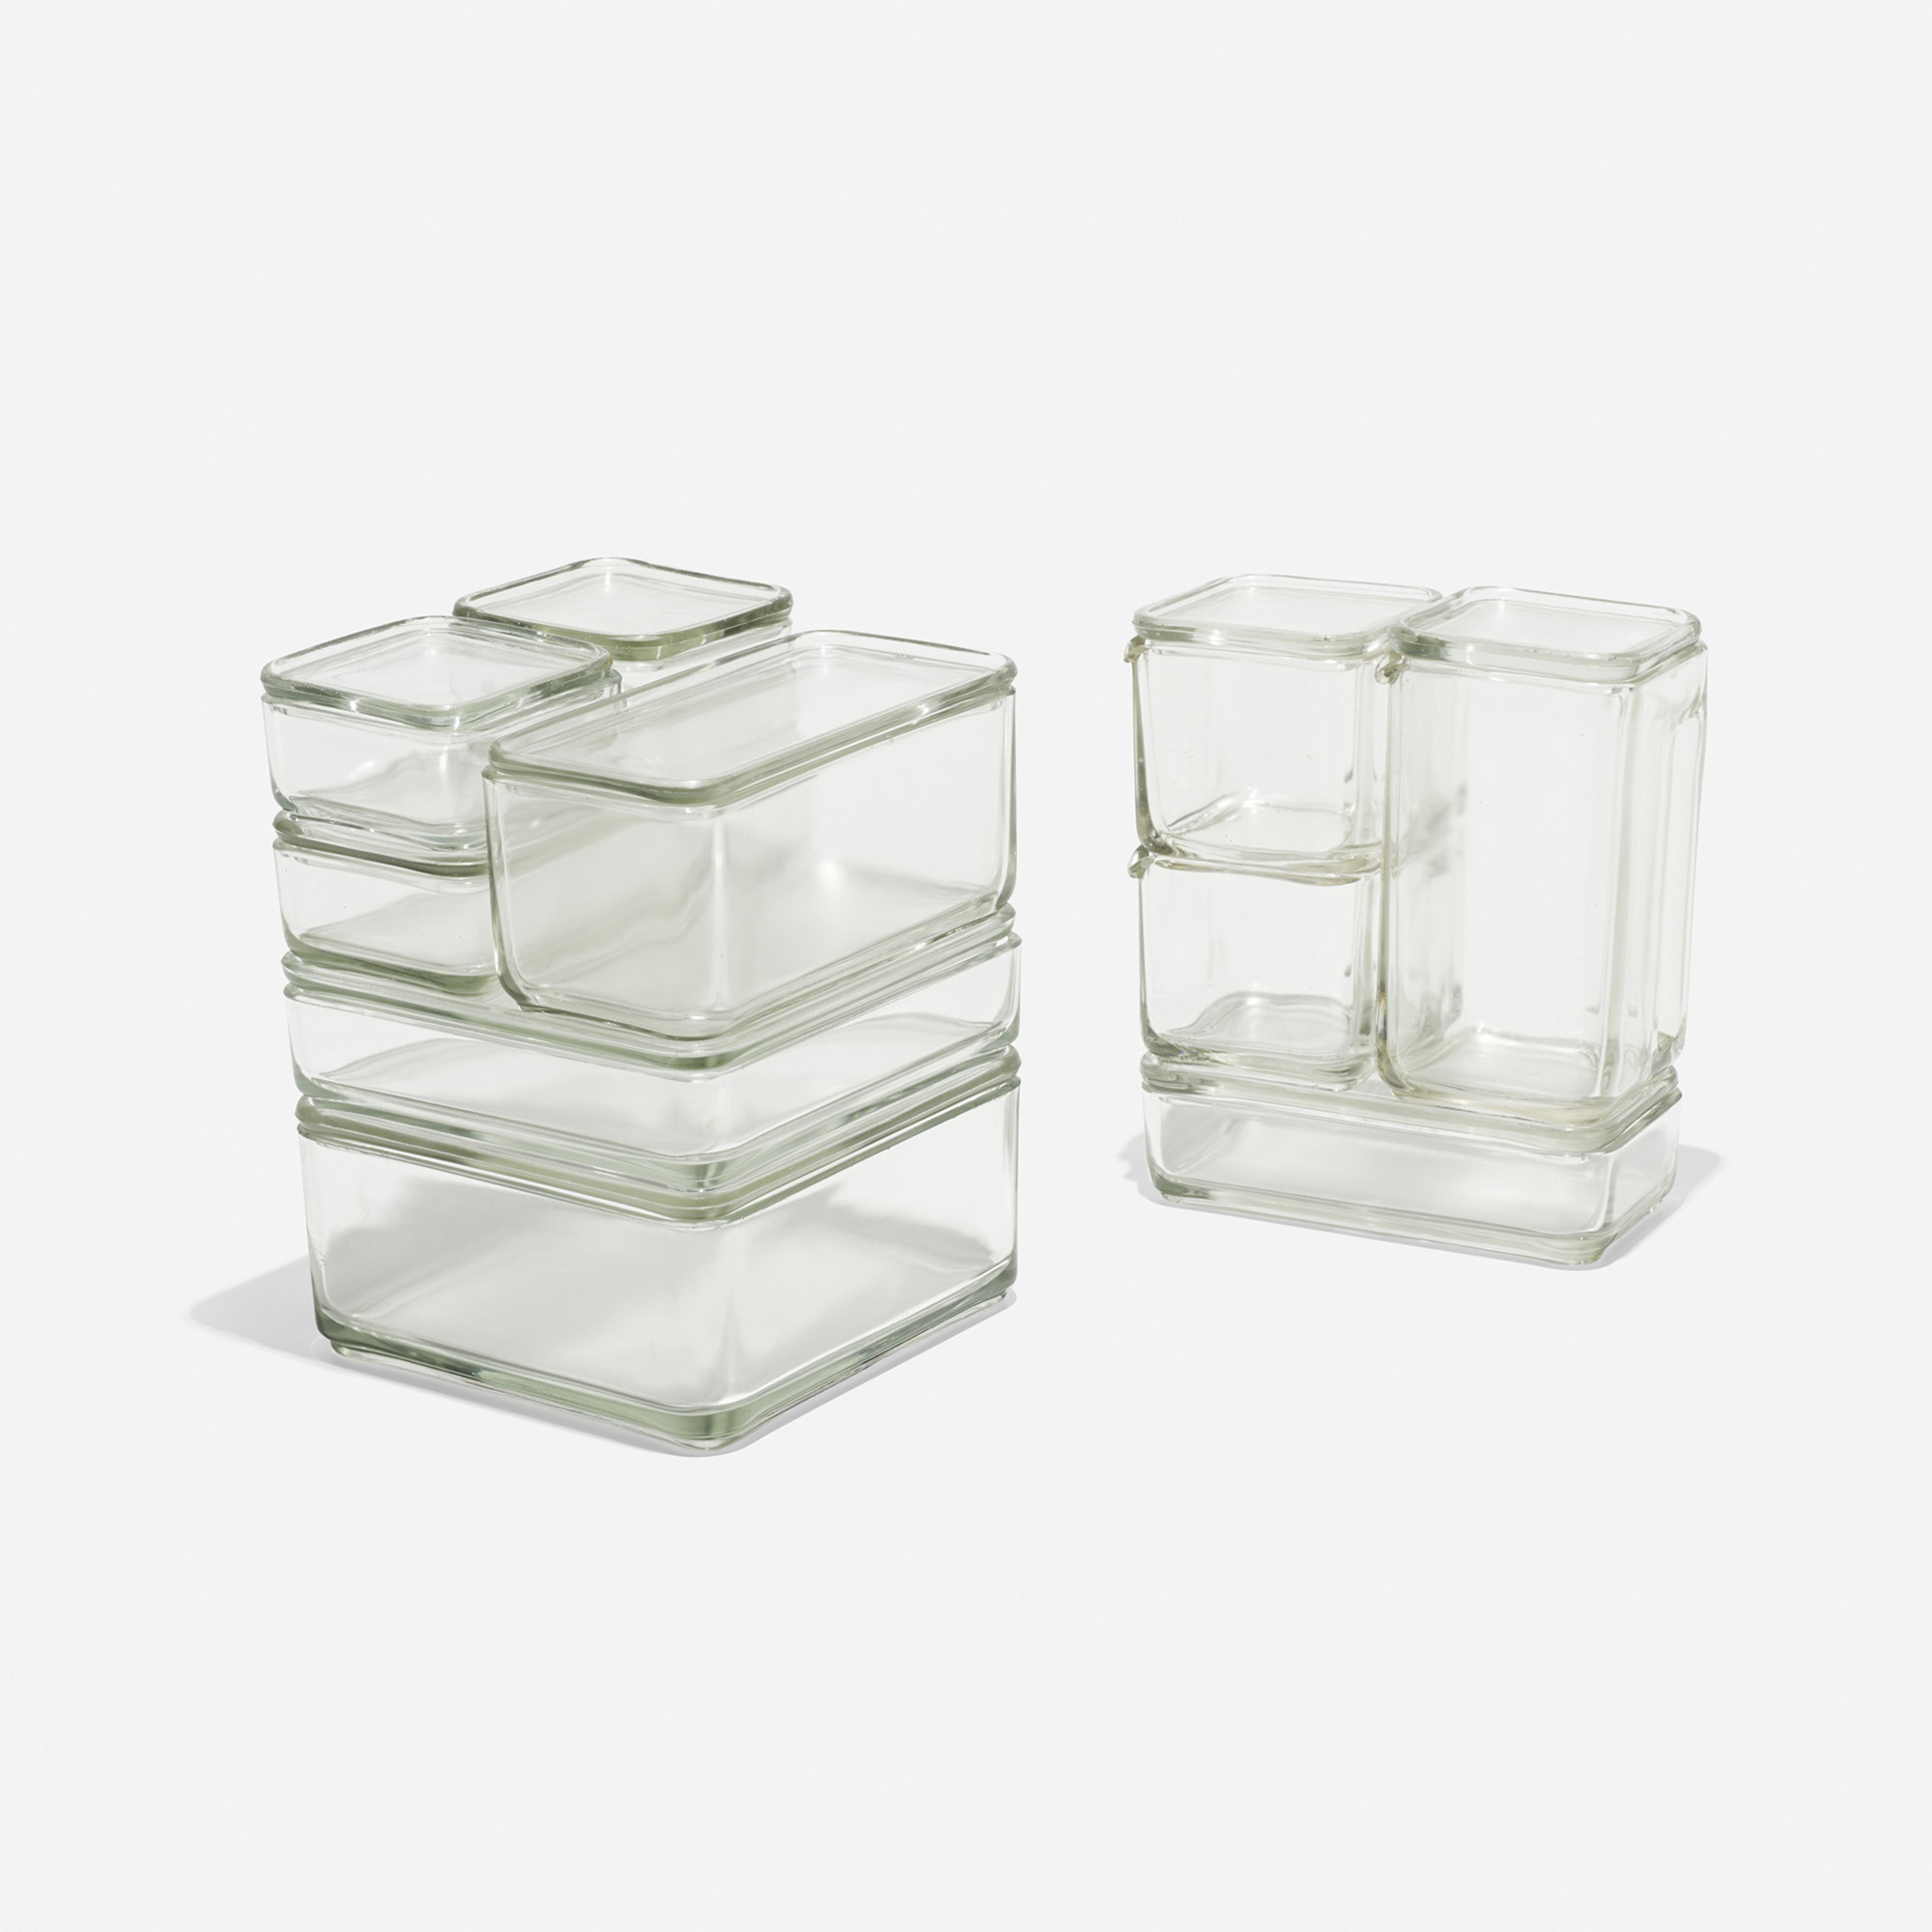 170 WILHELM WAGENFELD Kubus stacking containers set of ten